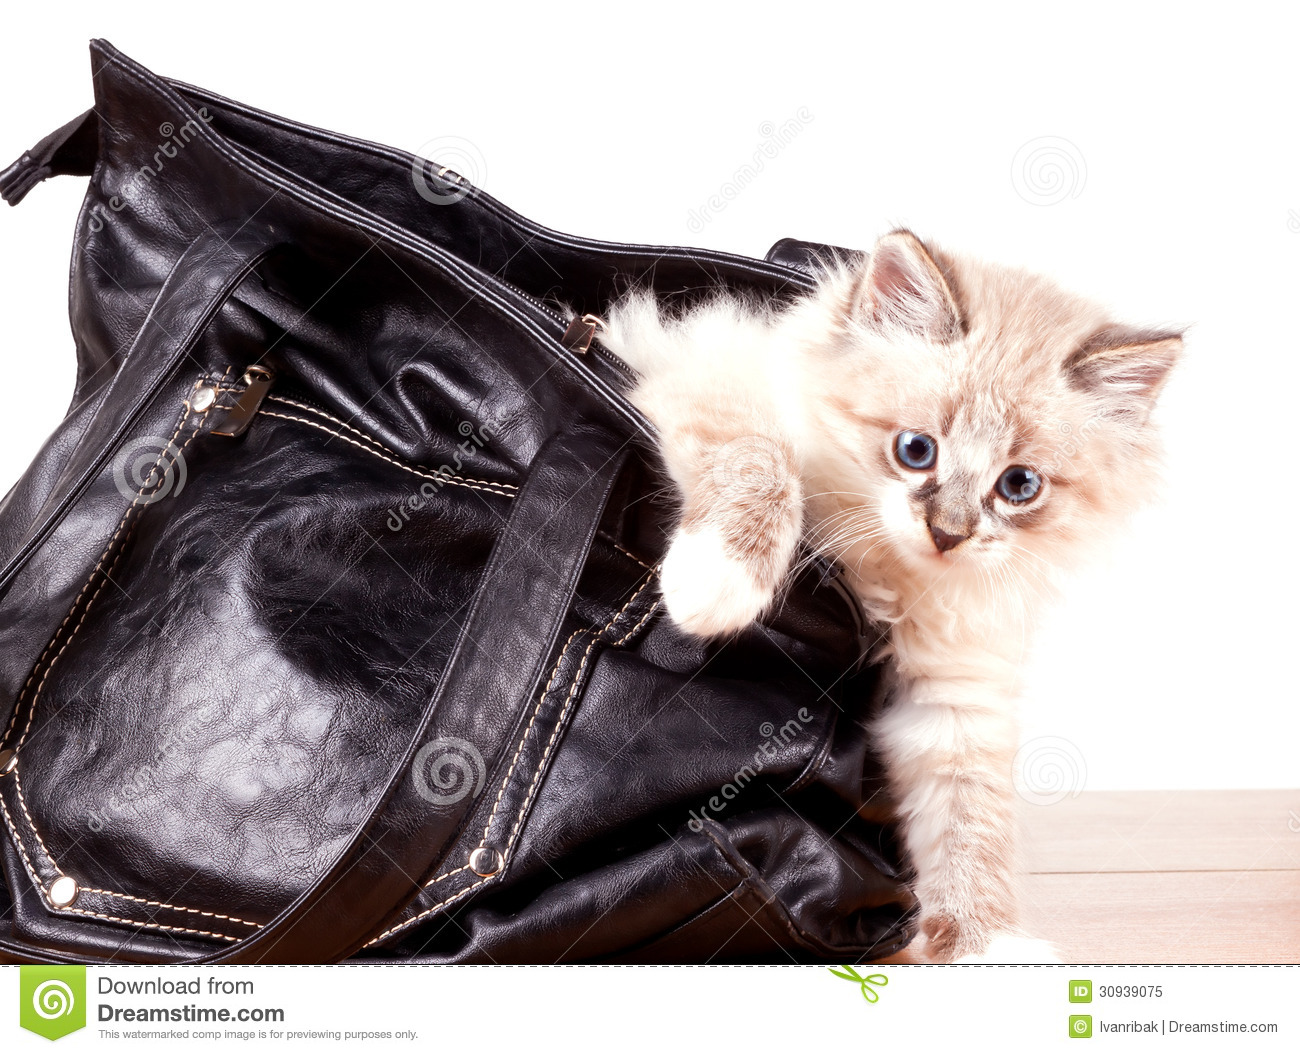 Little kitty gets out of the bag